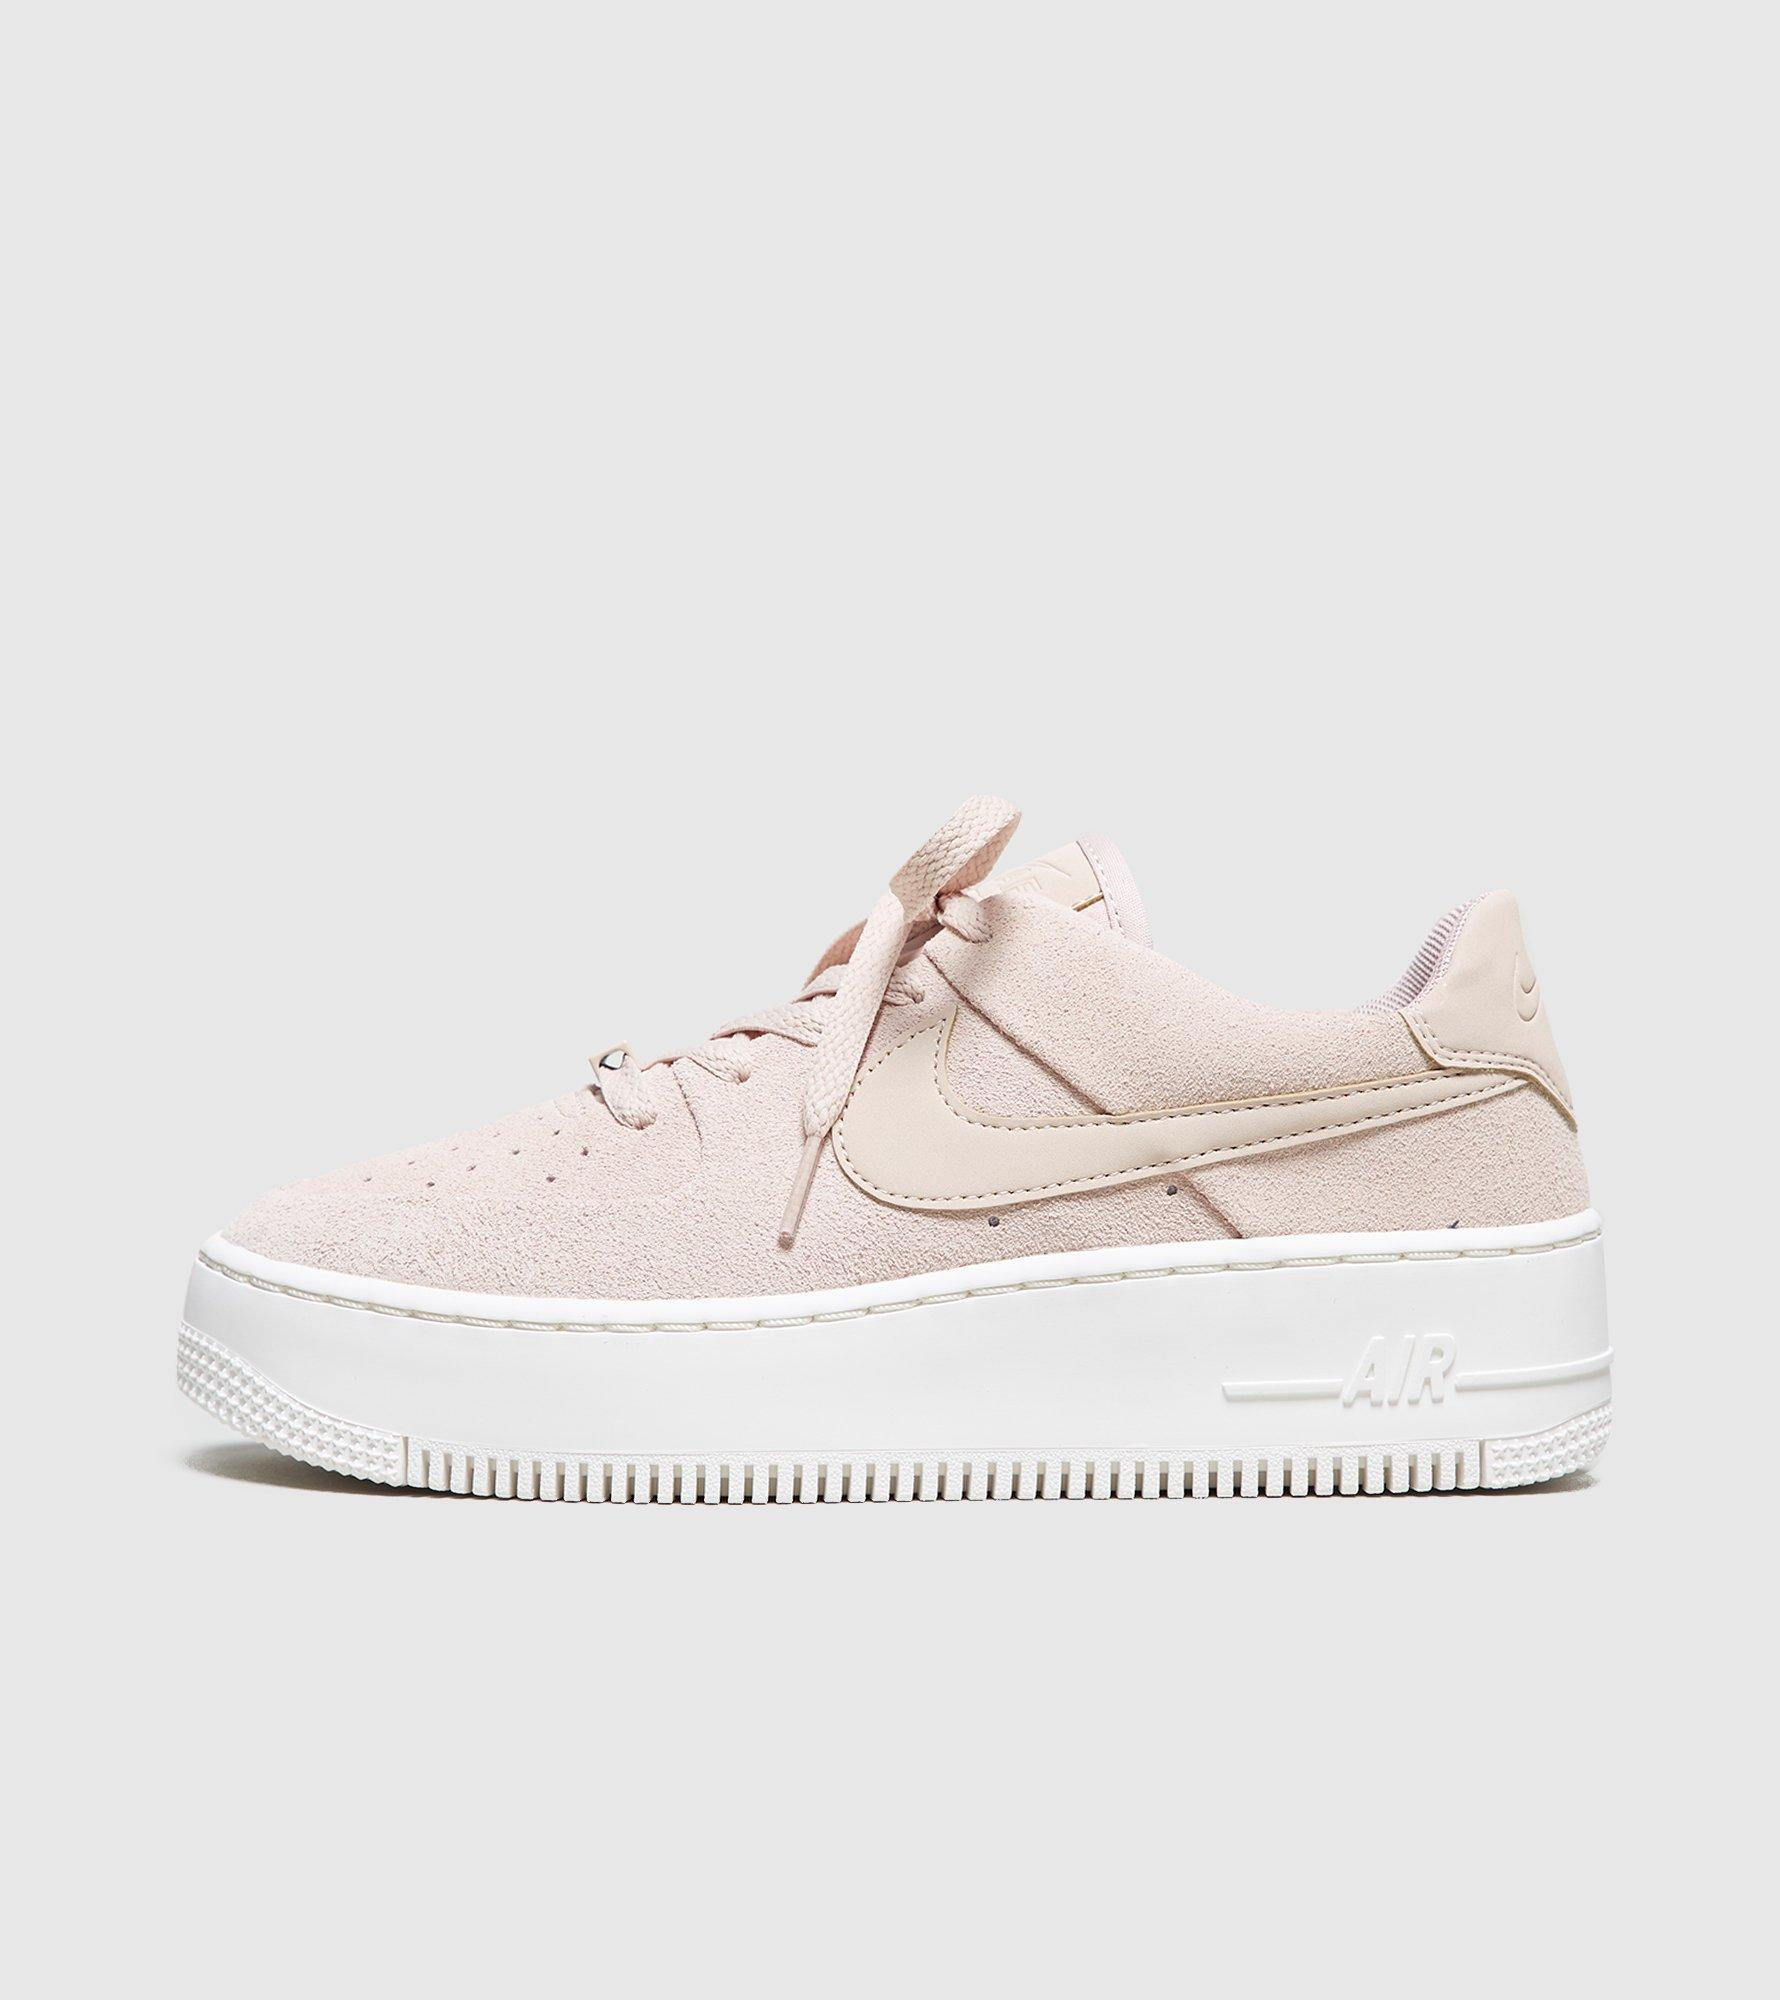 Lyst - Nike Air Force 1 Sage Low Women s in Natural 092dd82fb